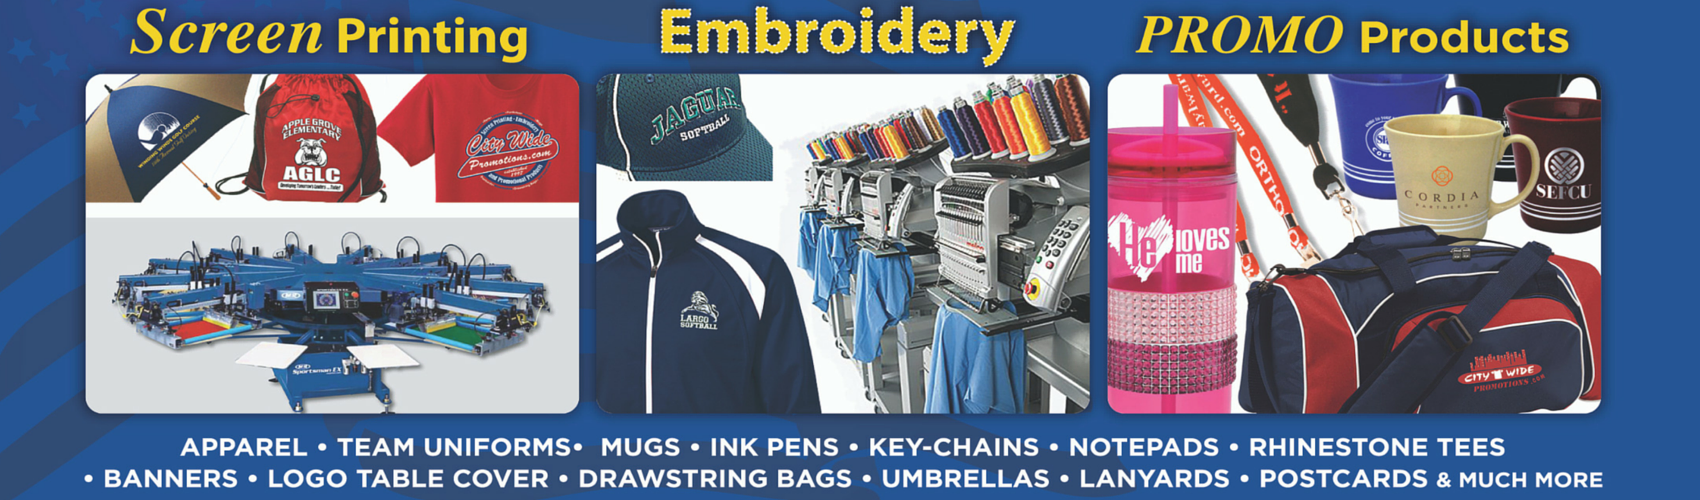 Small business promotional imprinted items